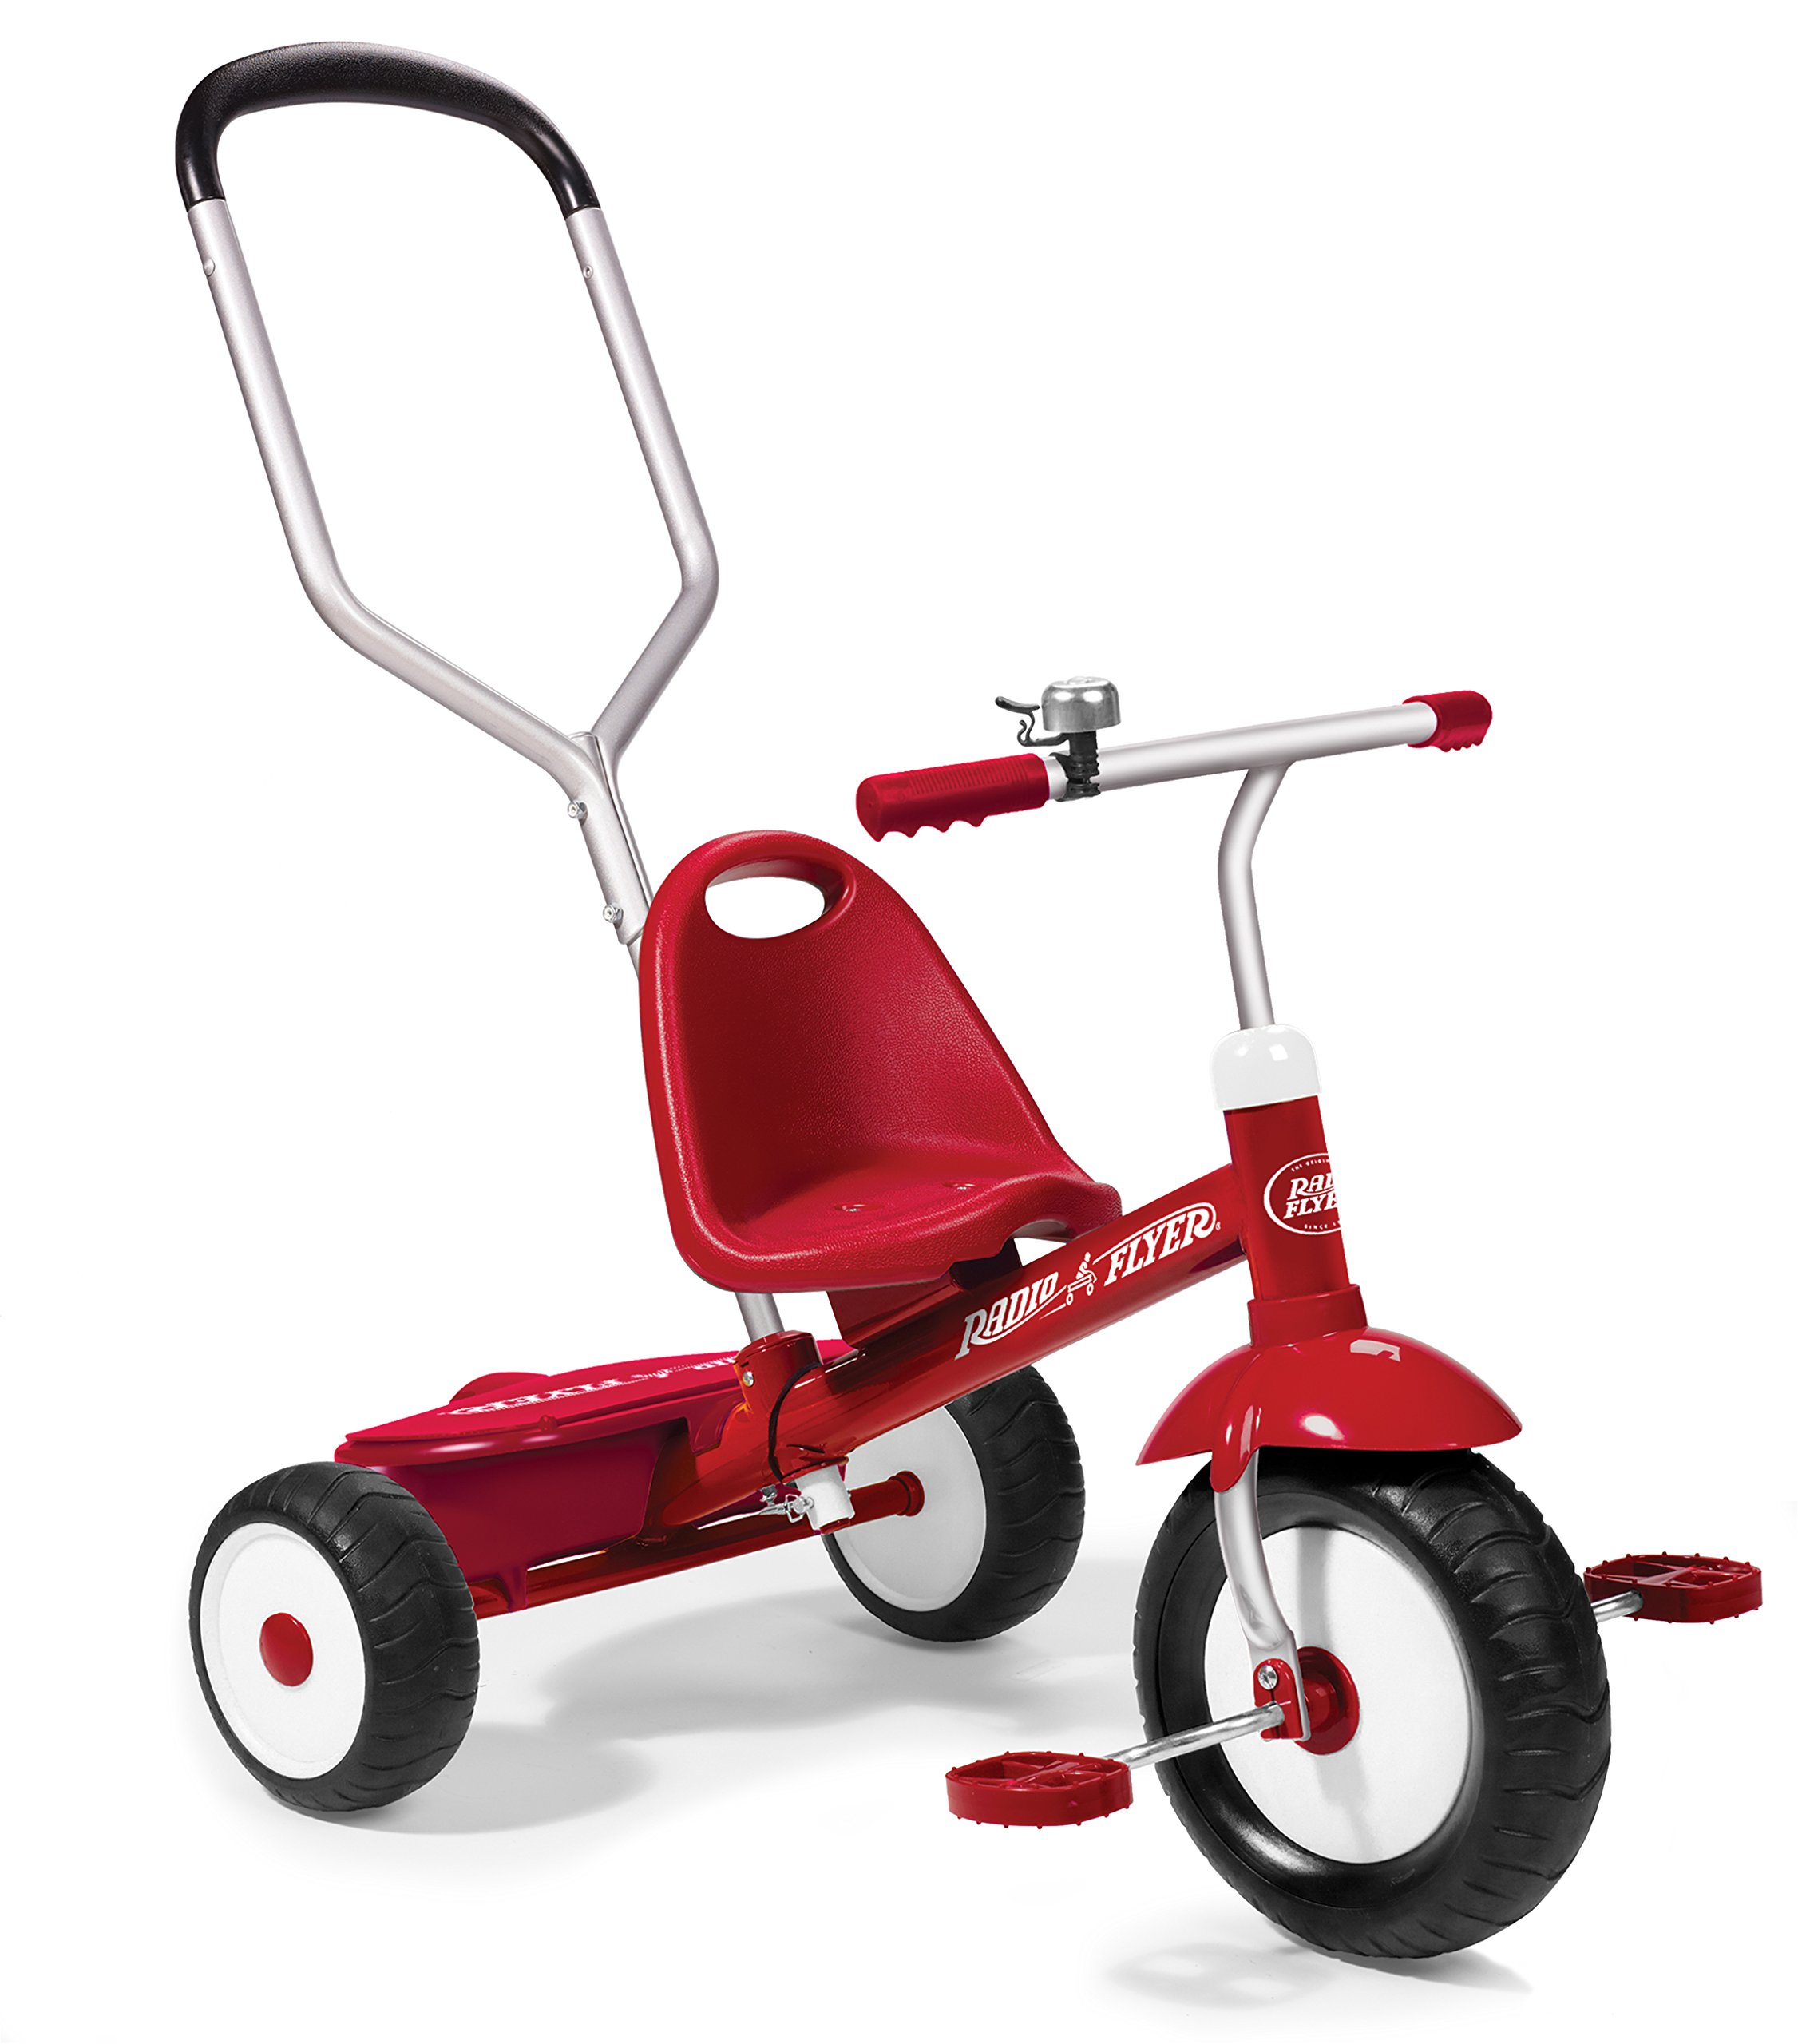 Radio Flyer Deluxe Steer and Stroll Trike by Radio Flyer